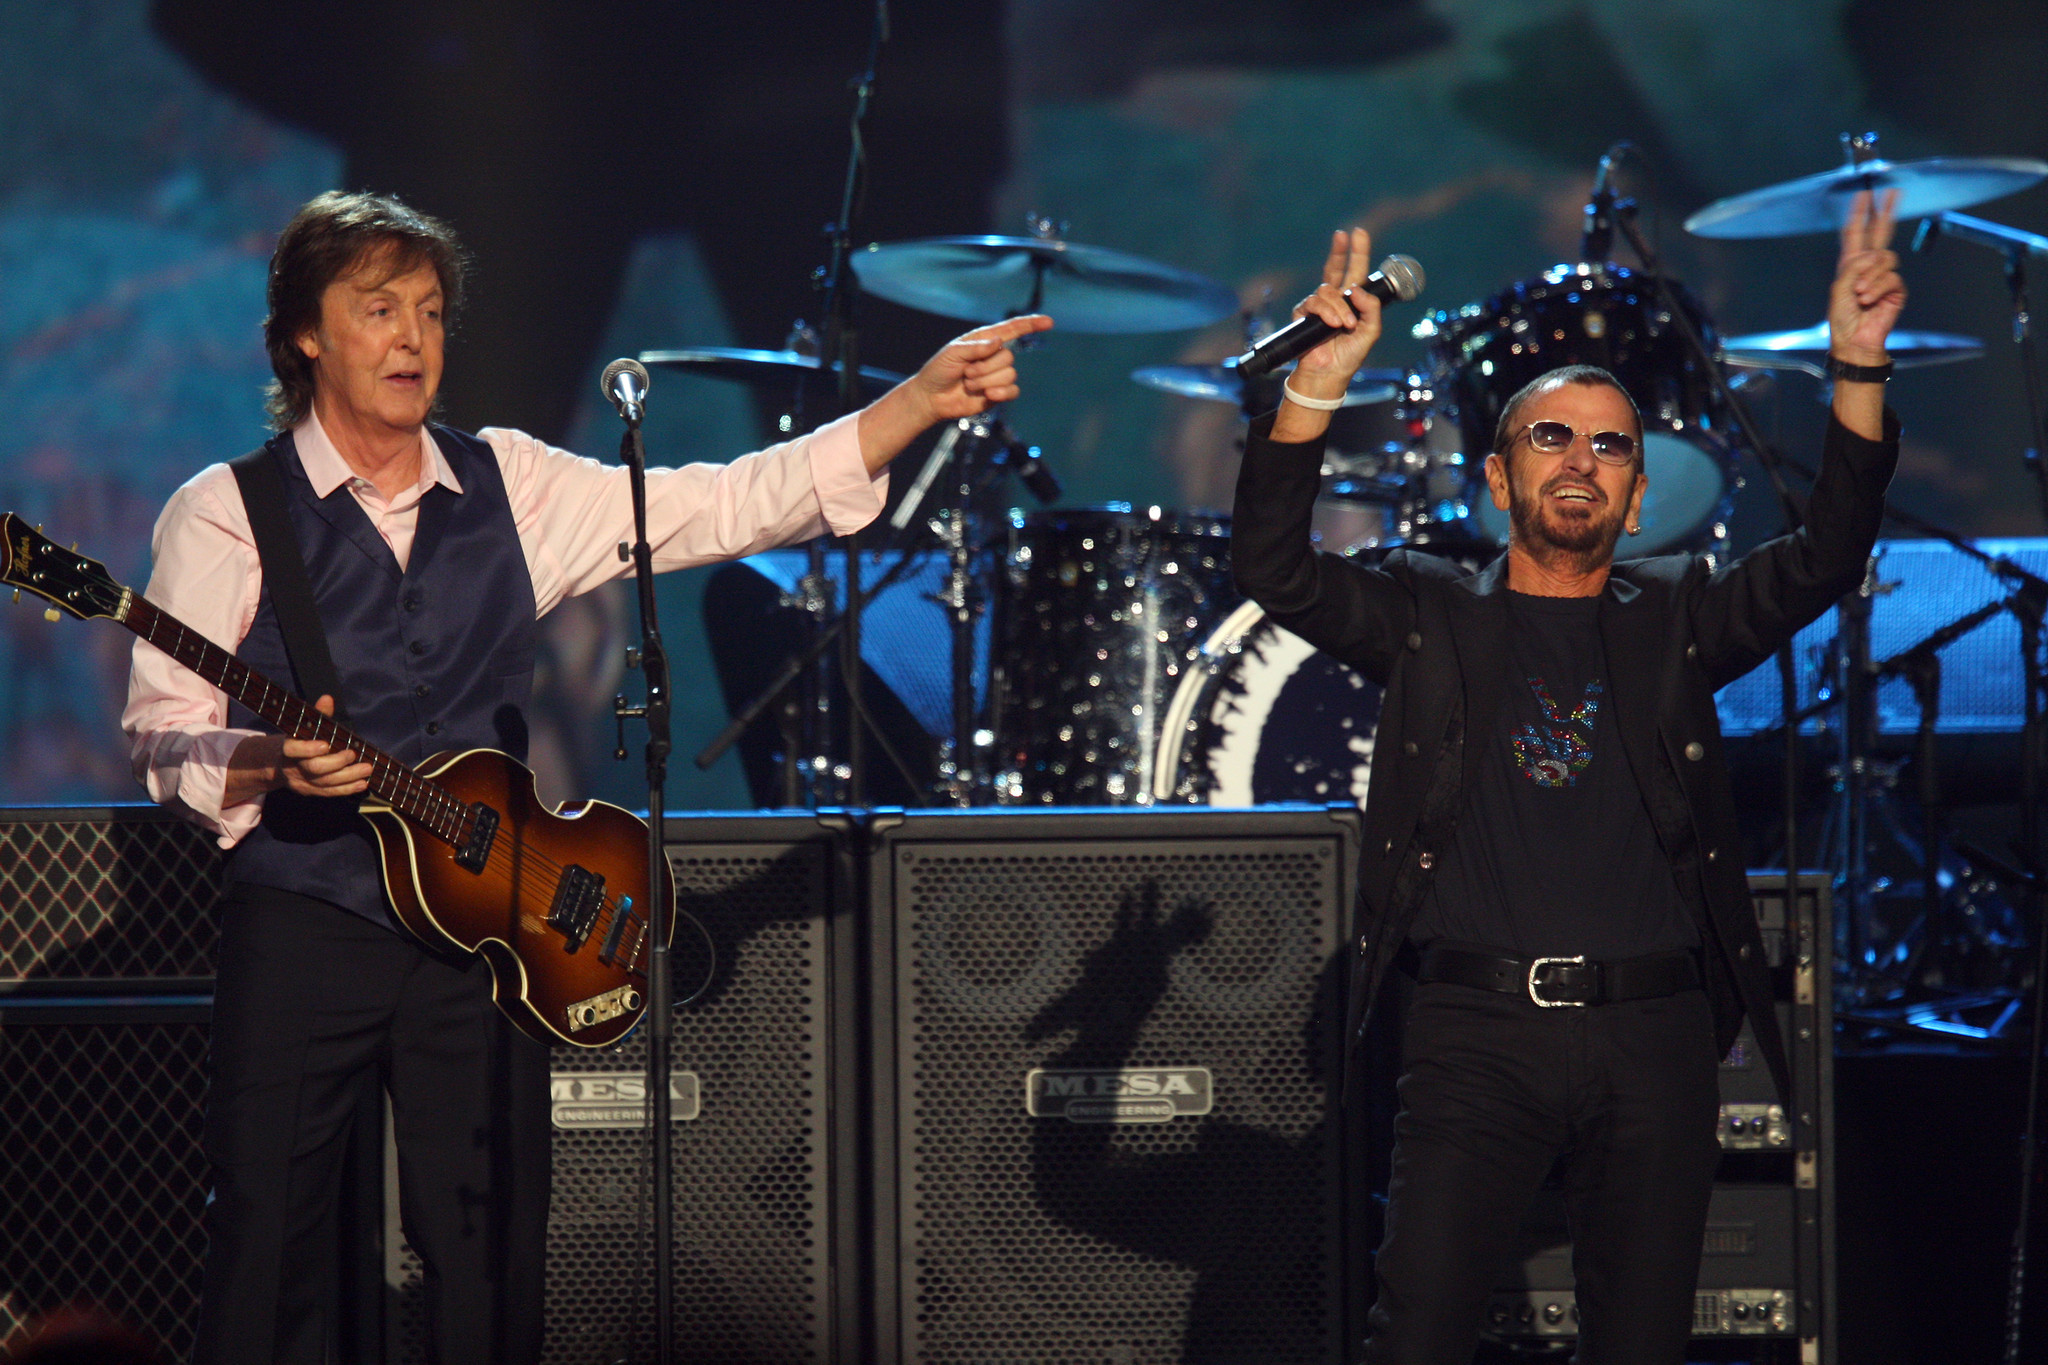 Paul mccartney to induct ringo starr into rock hall on april 18 la times